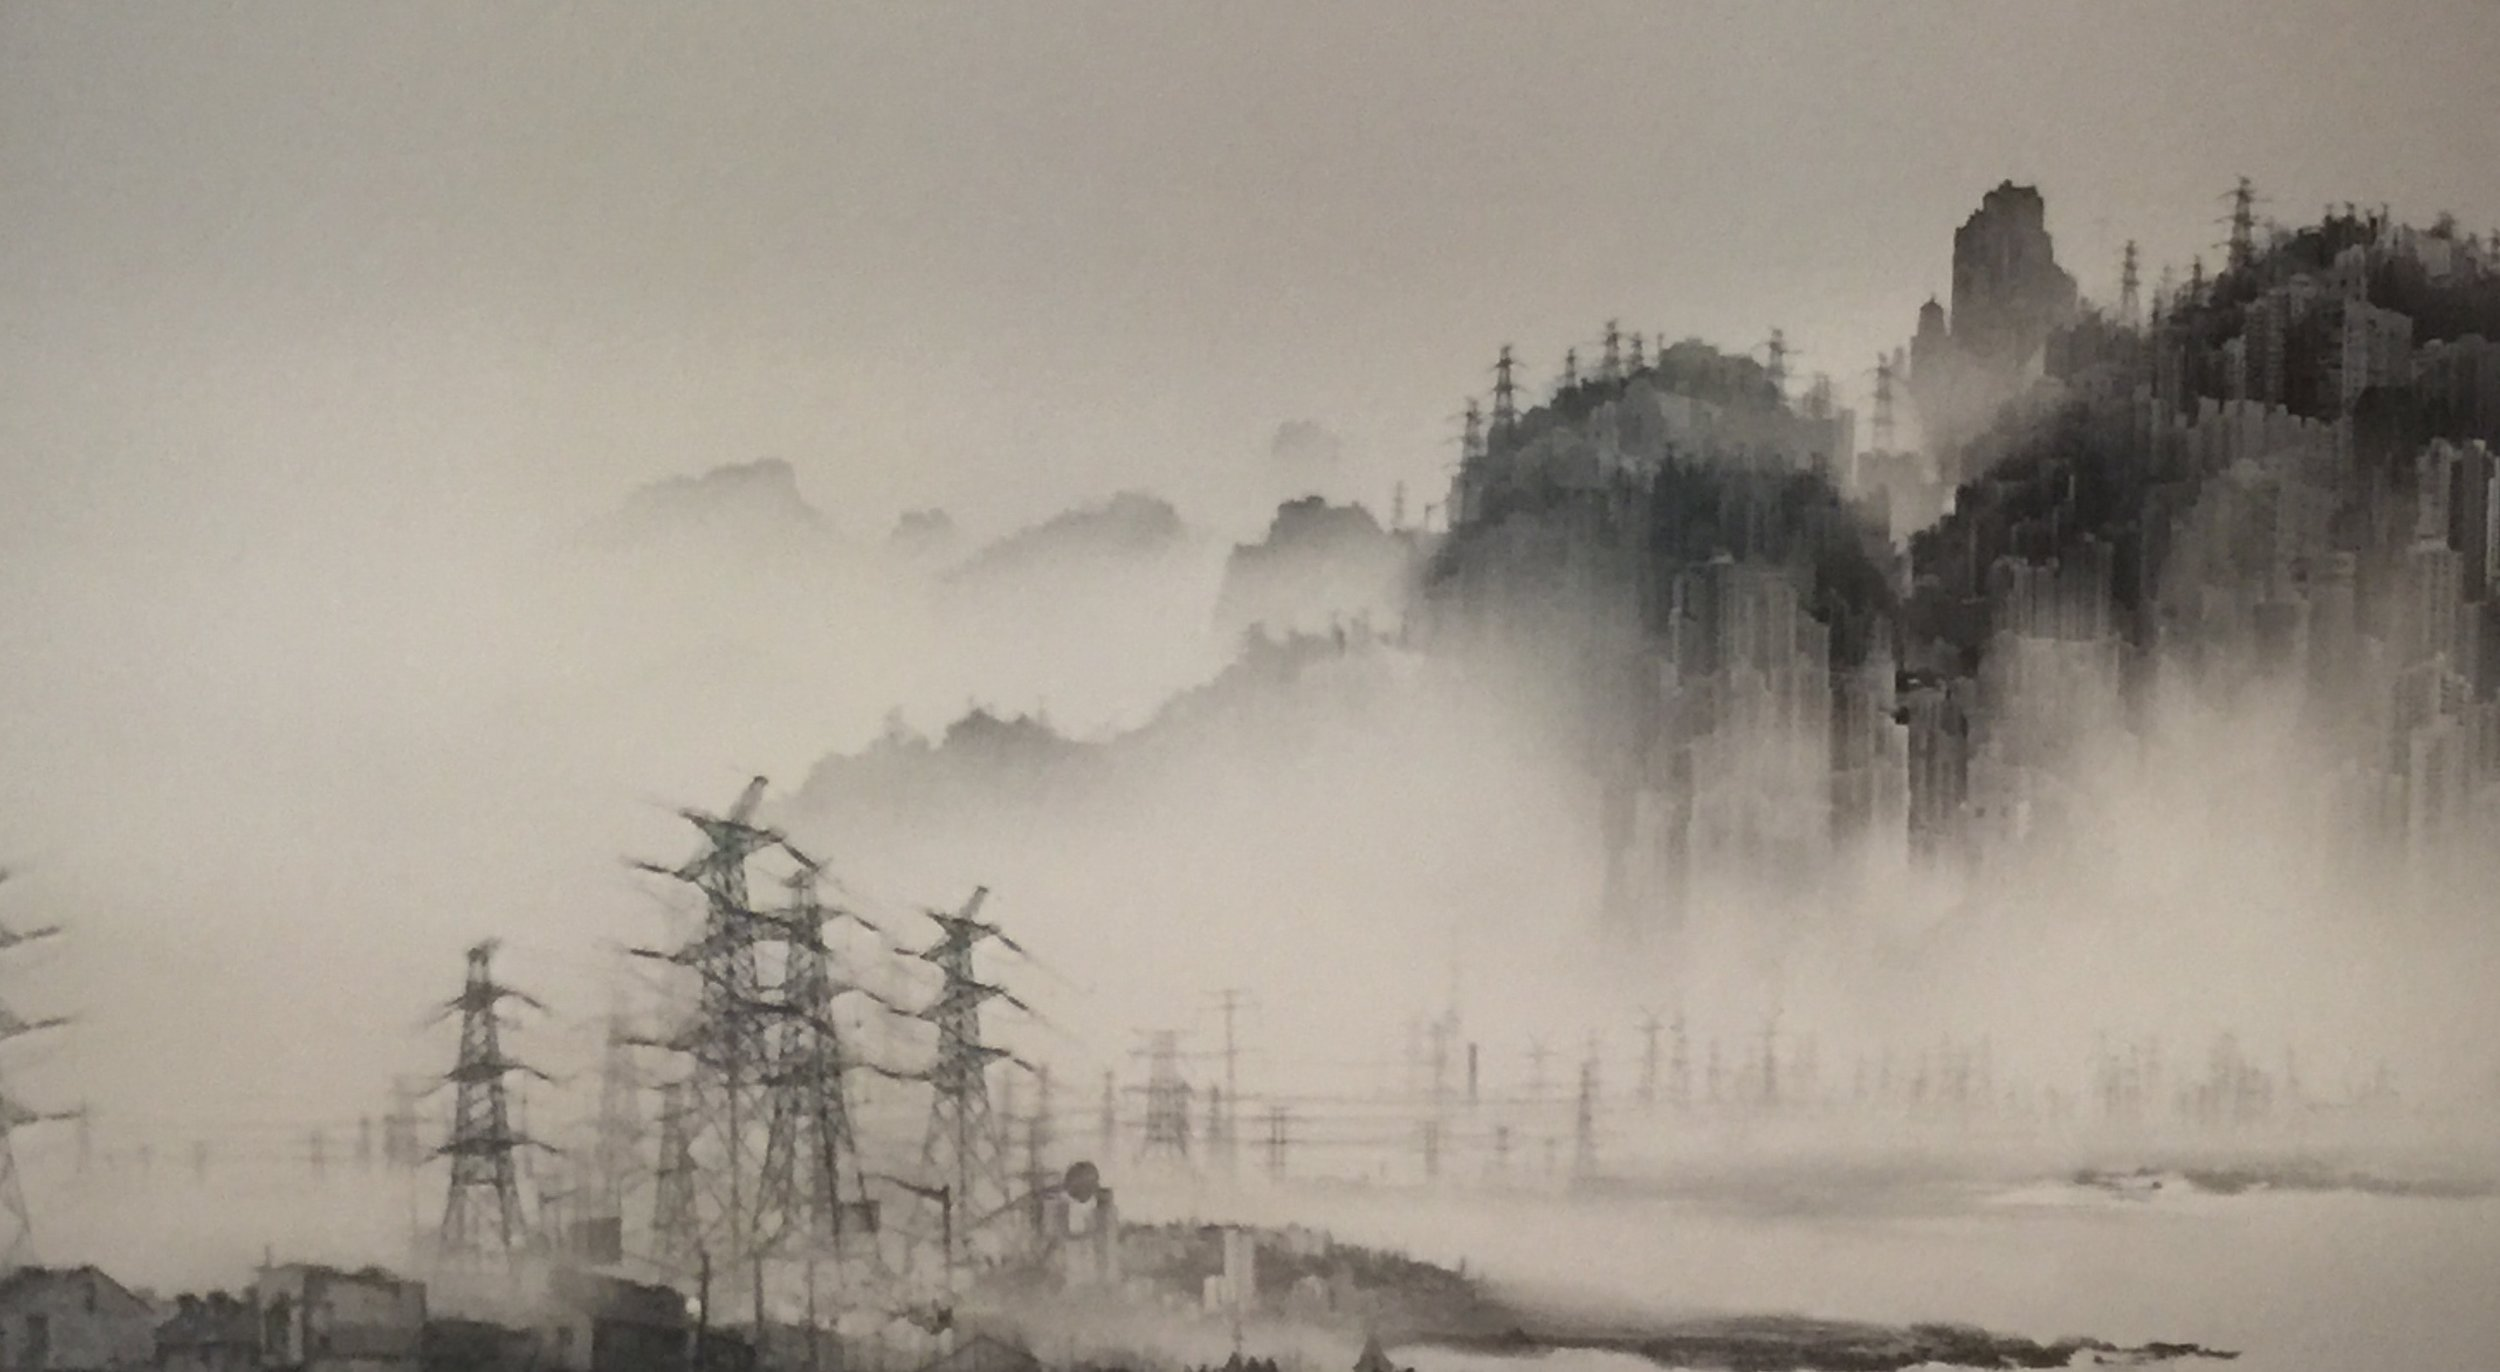 Phantom Landscape III , by Yang Yongliang, 2007-8, in the British Museum (clipped photo by RYC)